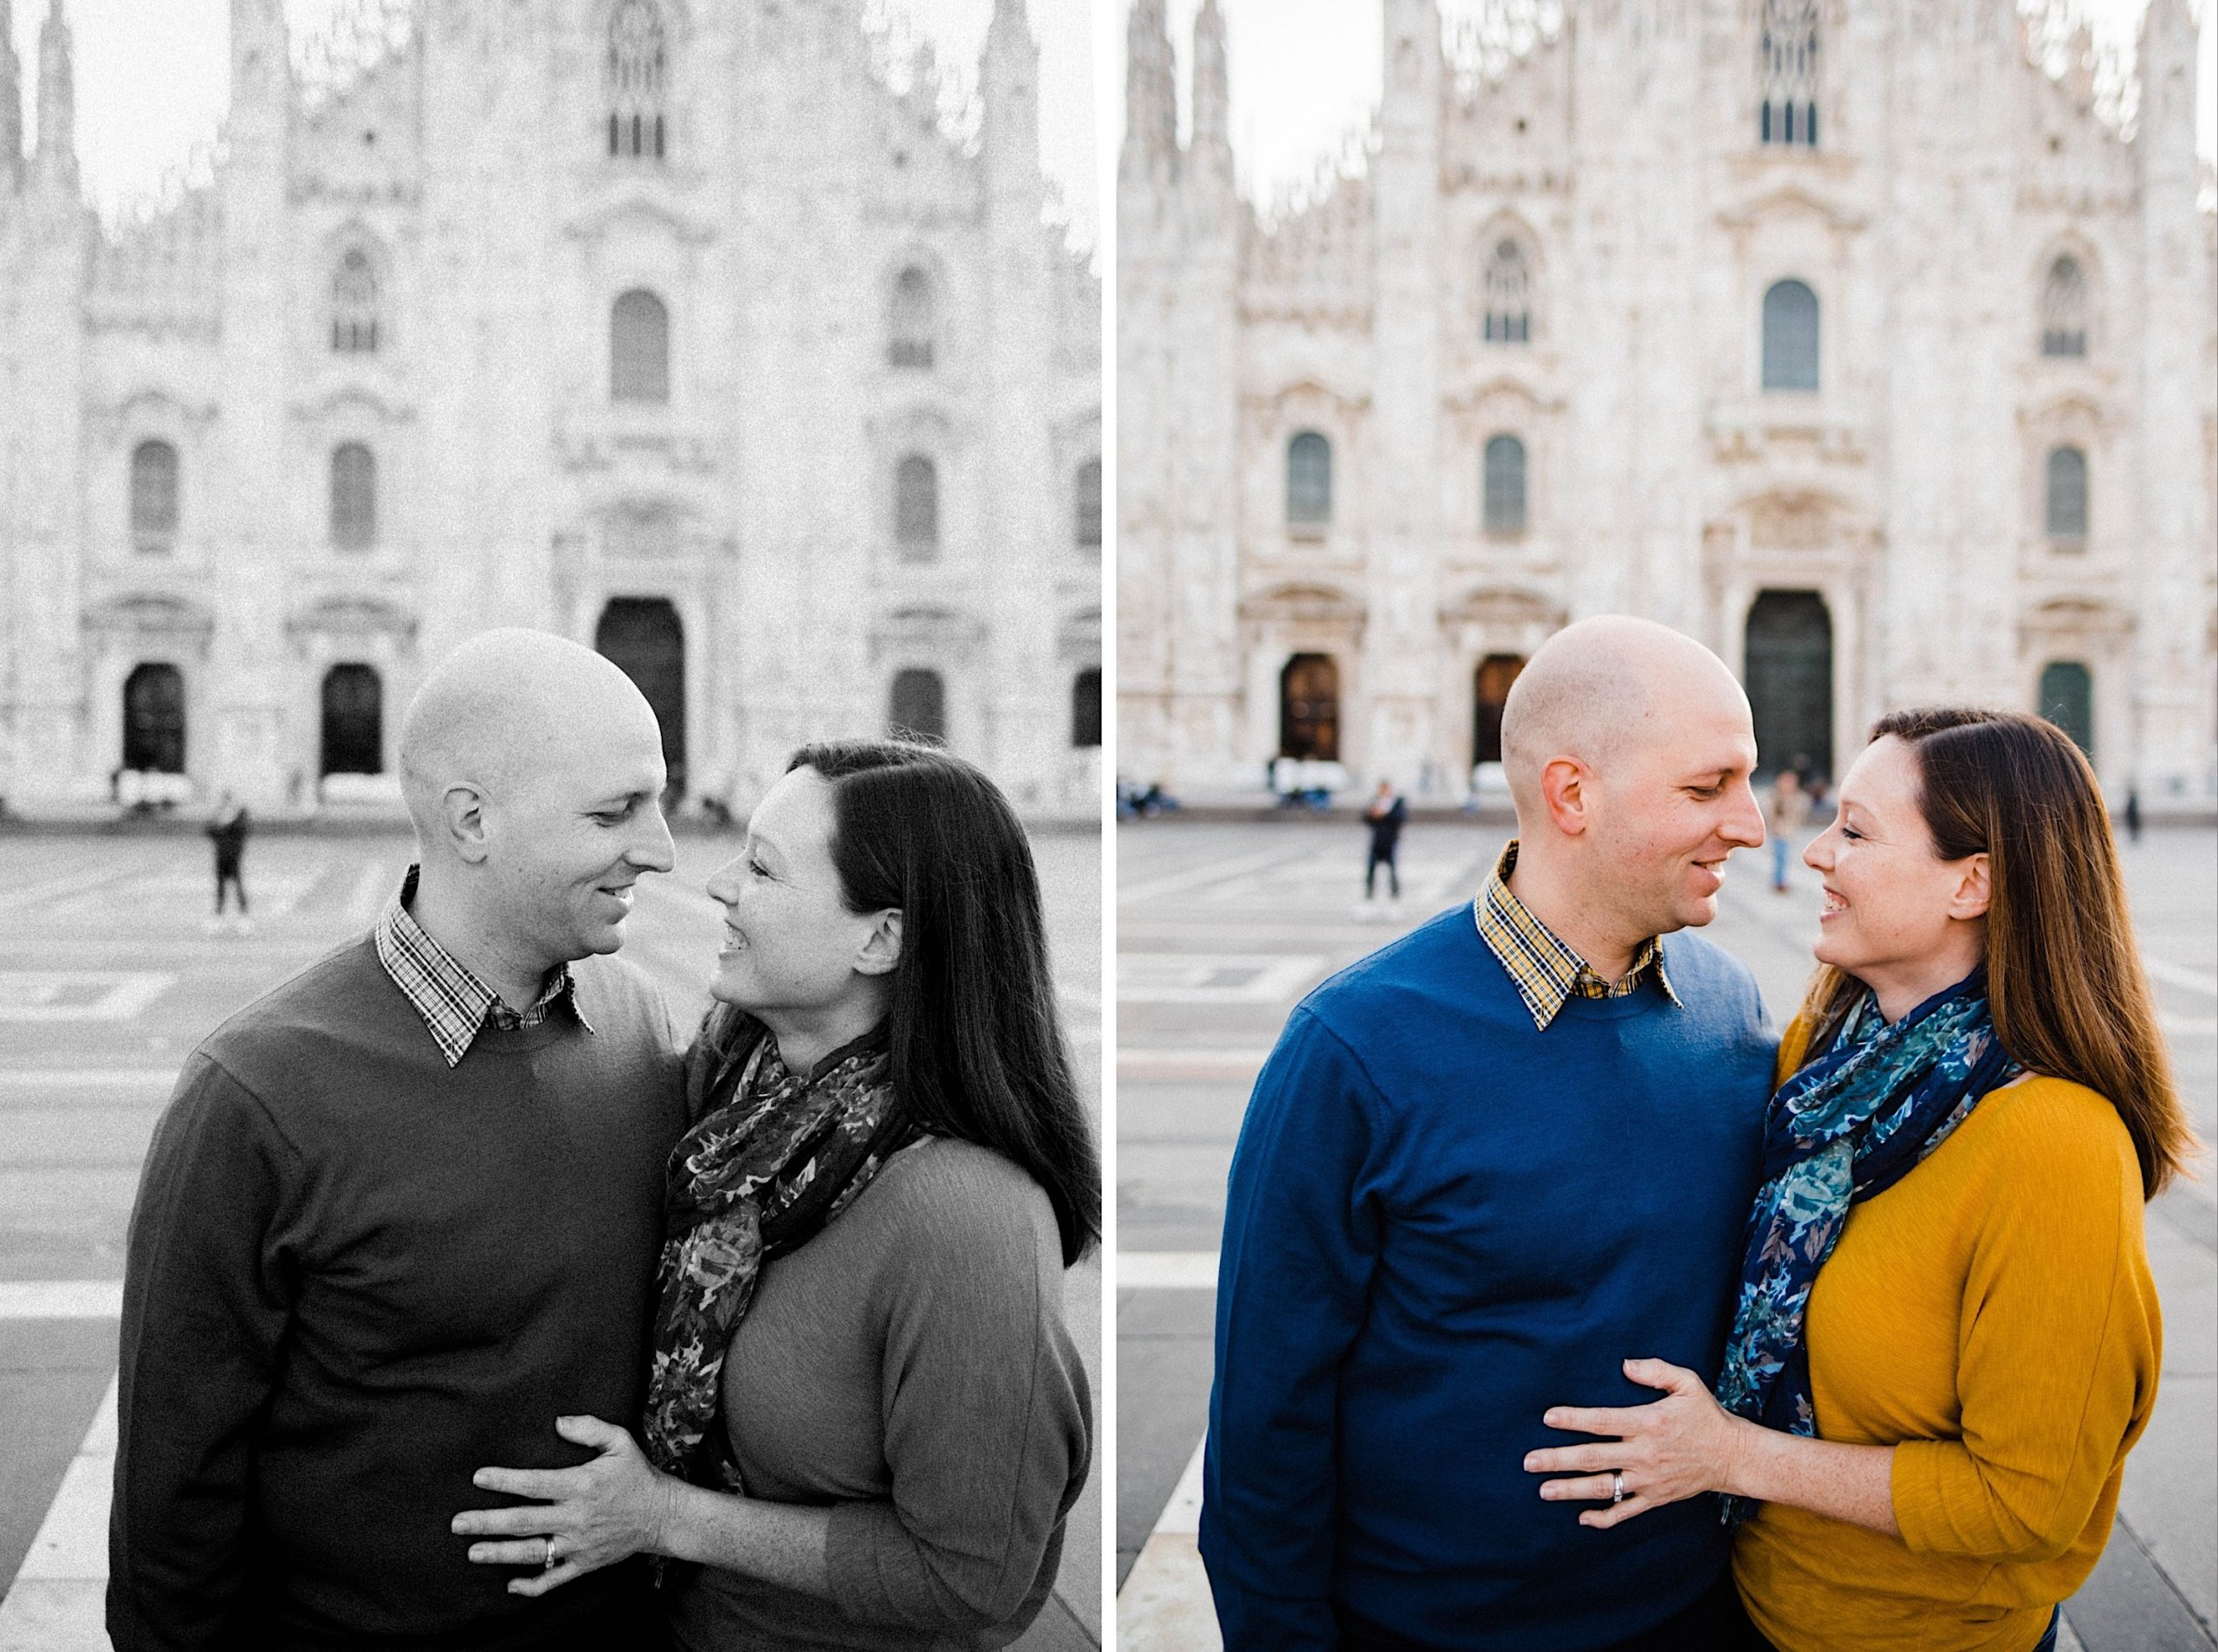 Two portrait photos, side-by-side, of a couple kissing in front of the Duomo di Milano.